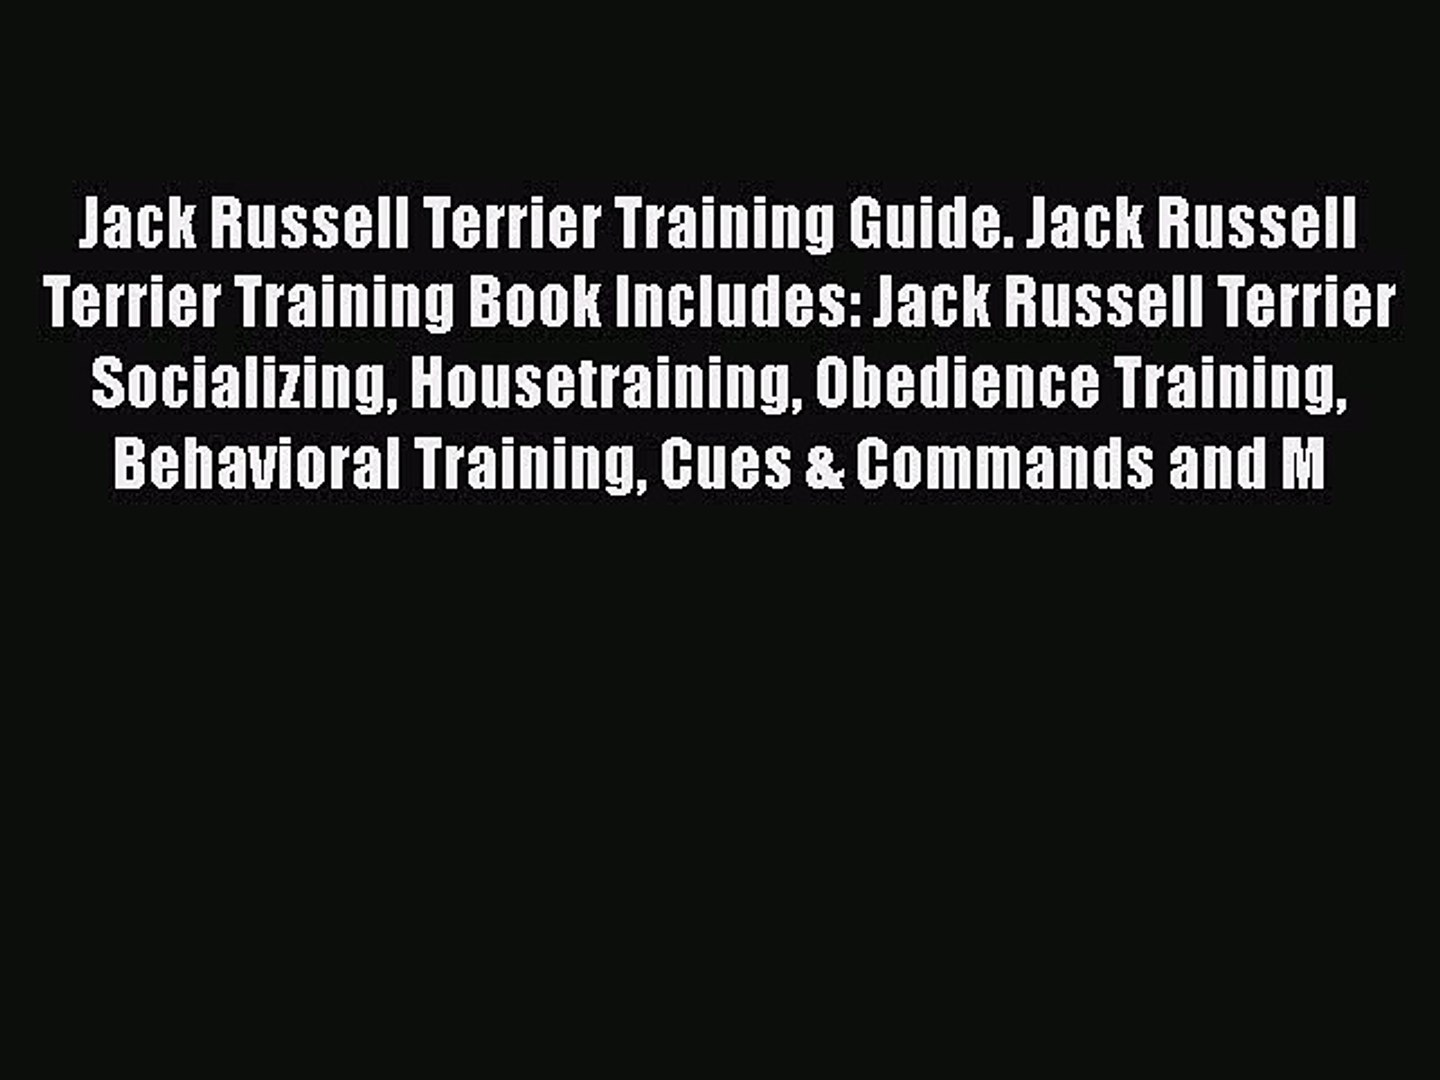 [PDF] Jack Russell Terrier Training Guide. Jack Russell Terrier Training Book Includes: Jack